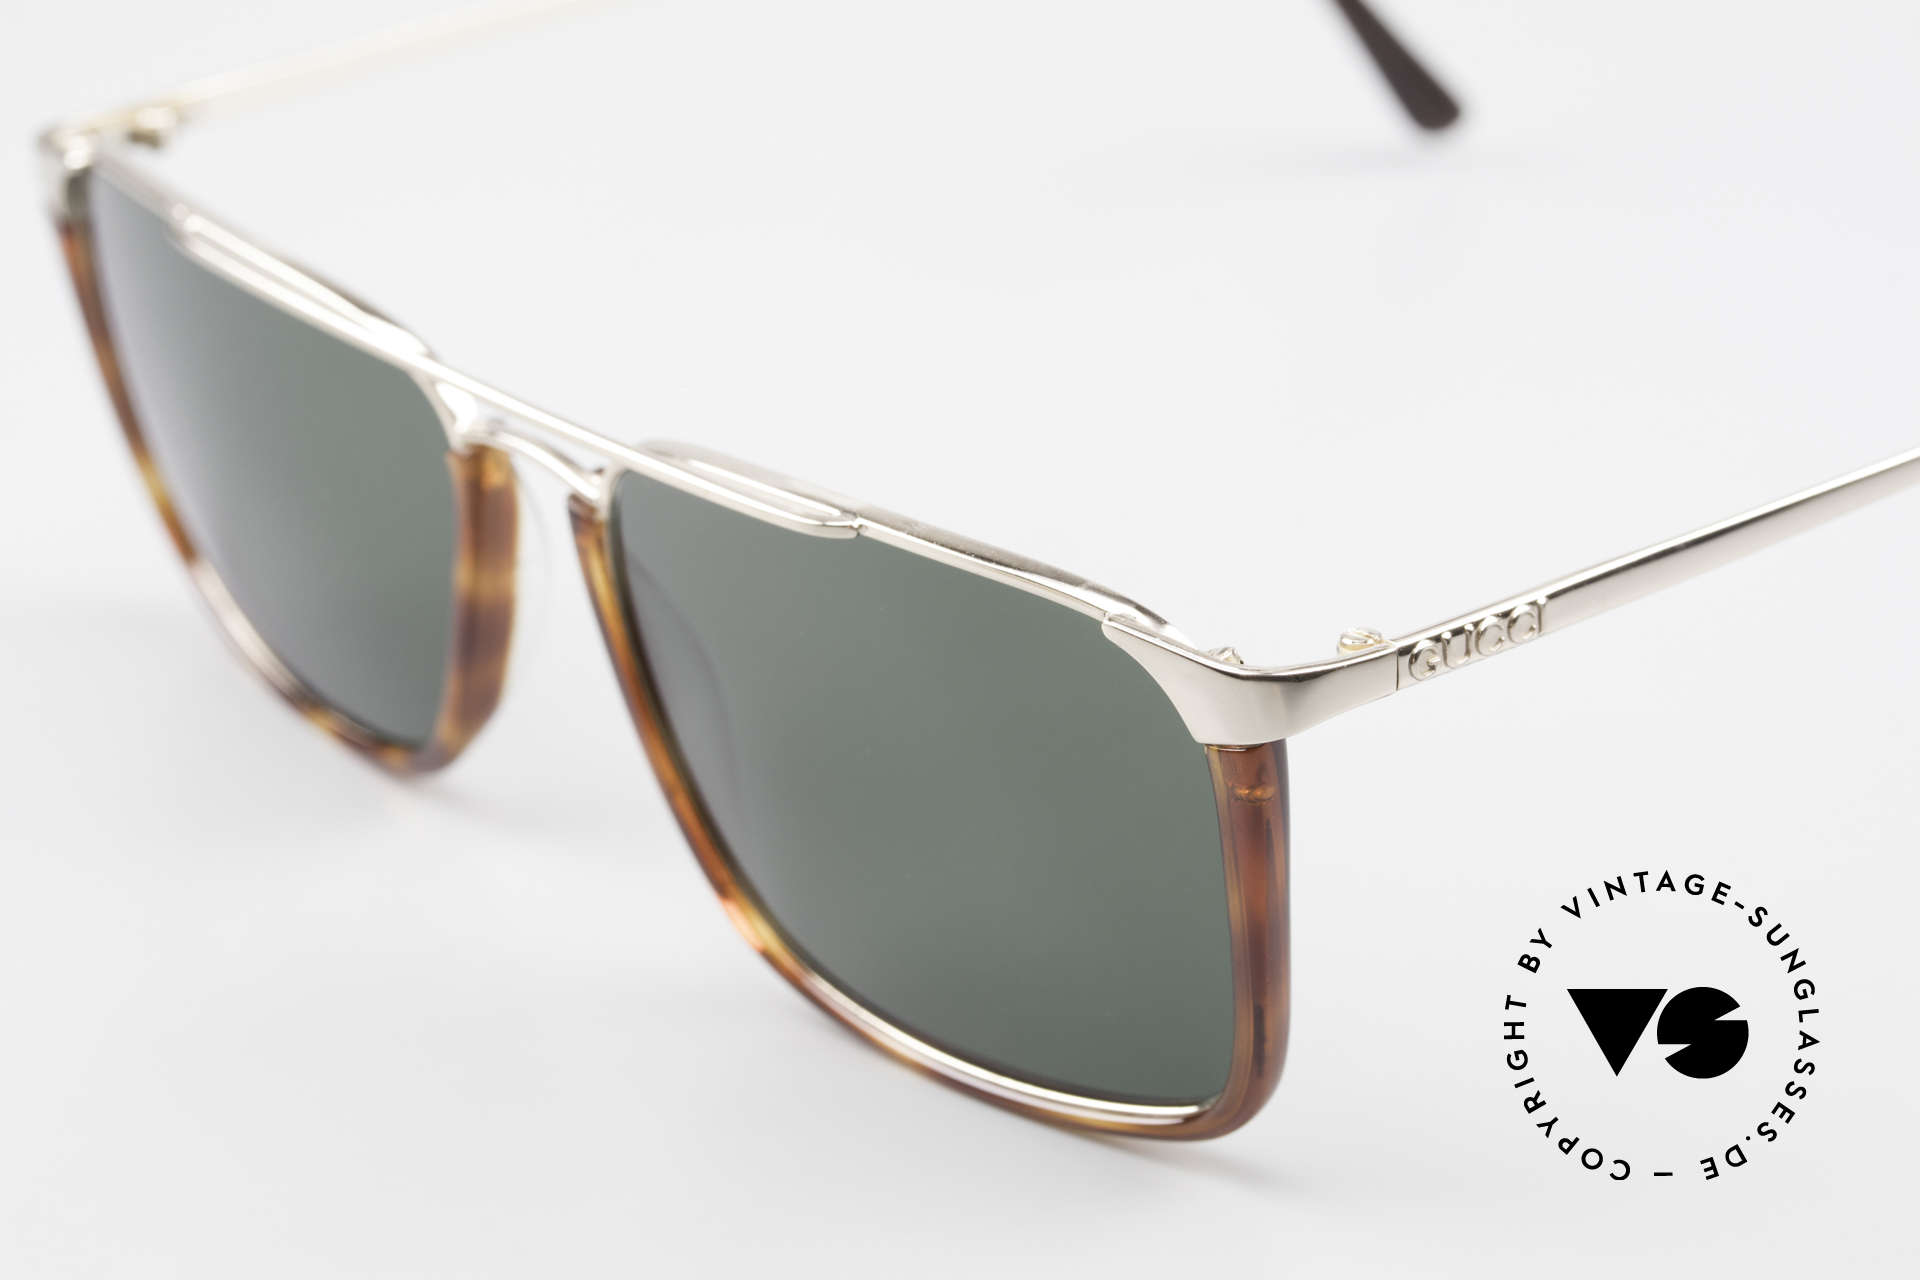 Gucci 1307 Rare 90's Designer Sunglasses, high-end quality & 1. class wearing comfort, Made for Men and Women